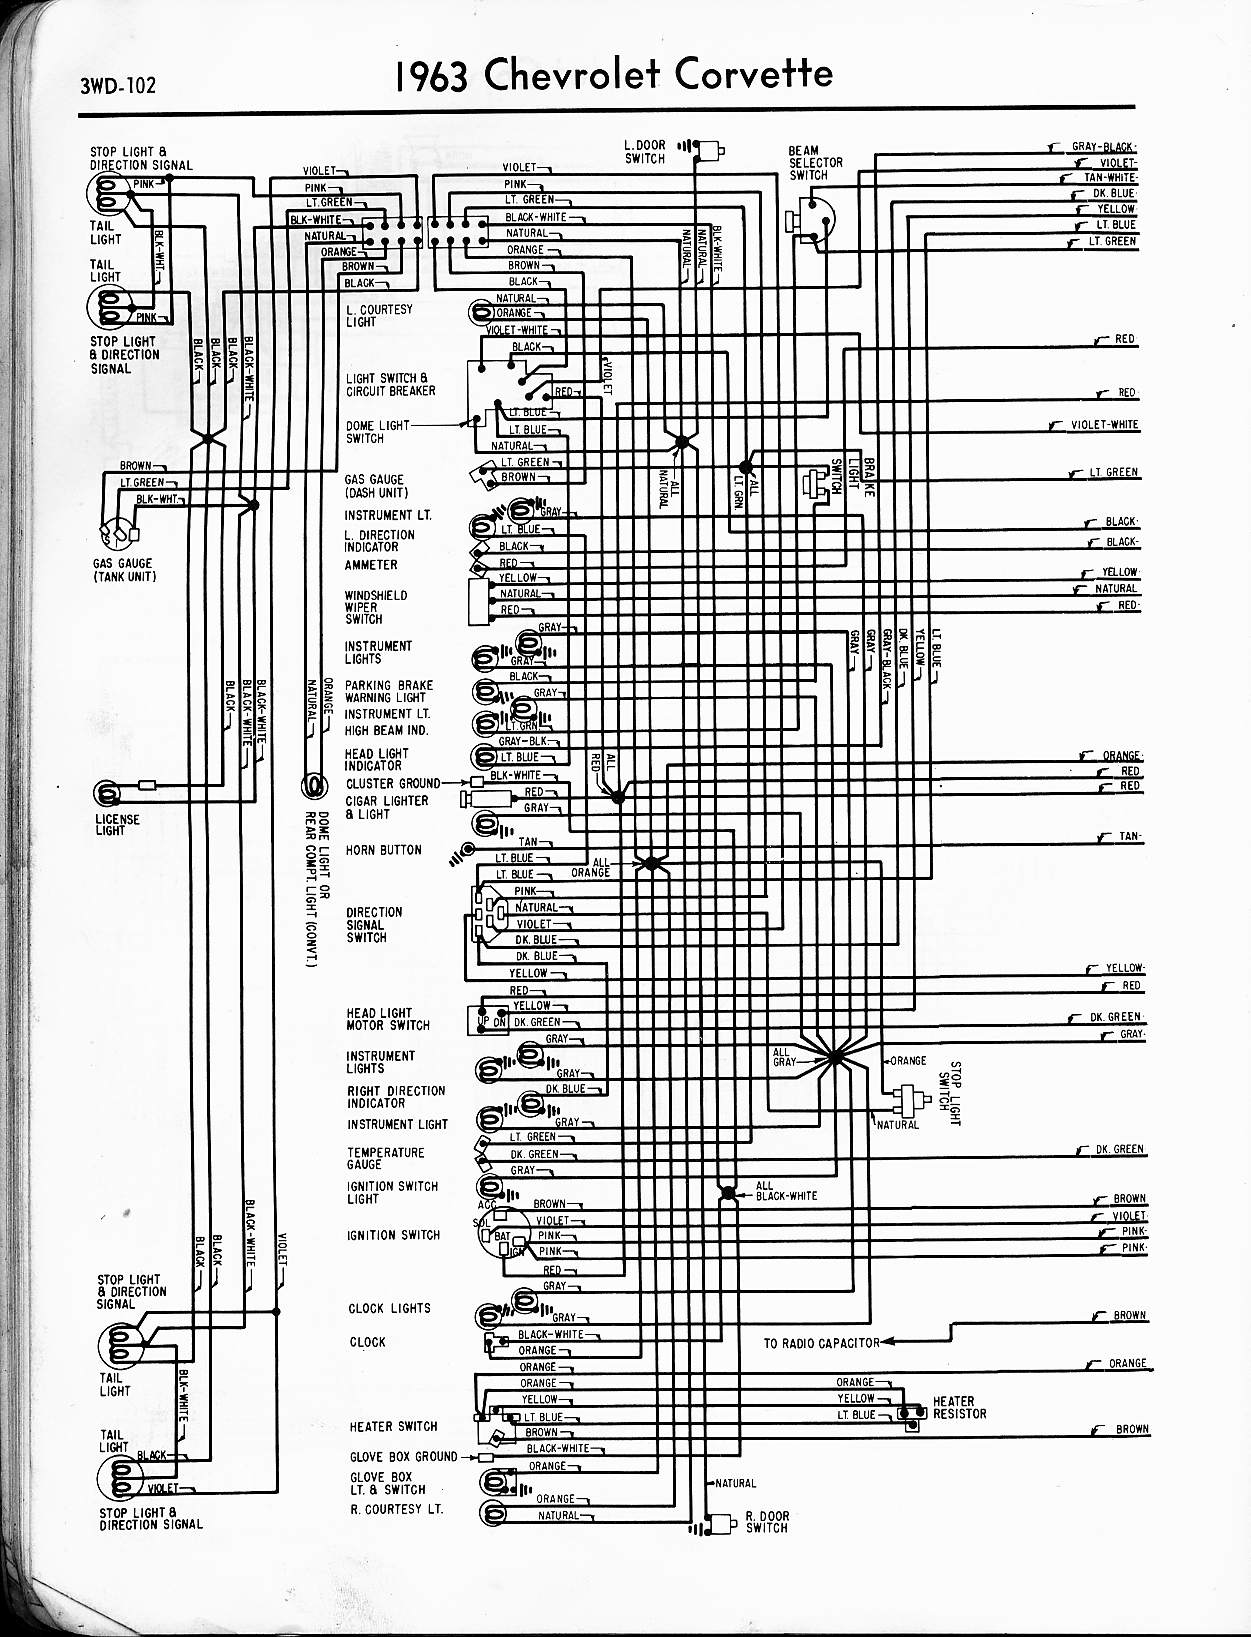 MWireChev63_3WD 102 1963 corvette wiring diagram 1963 corvette oil filter \u2022 wiring corvette electrical diagrams at mifinder.co